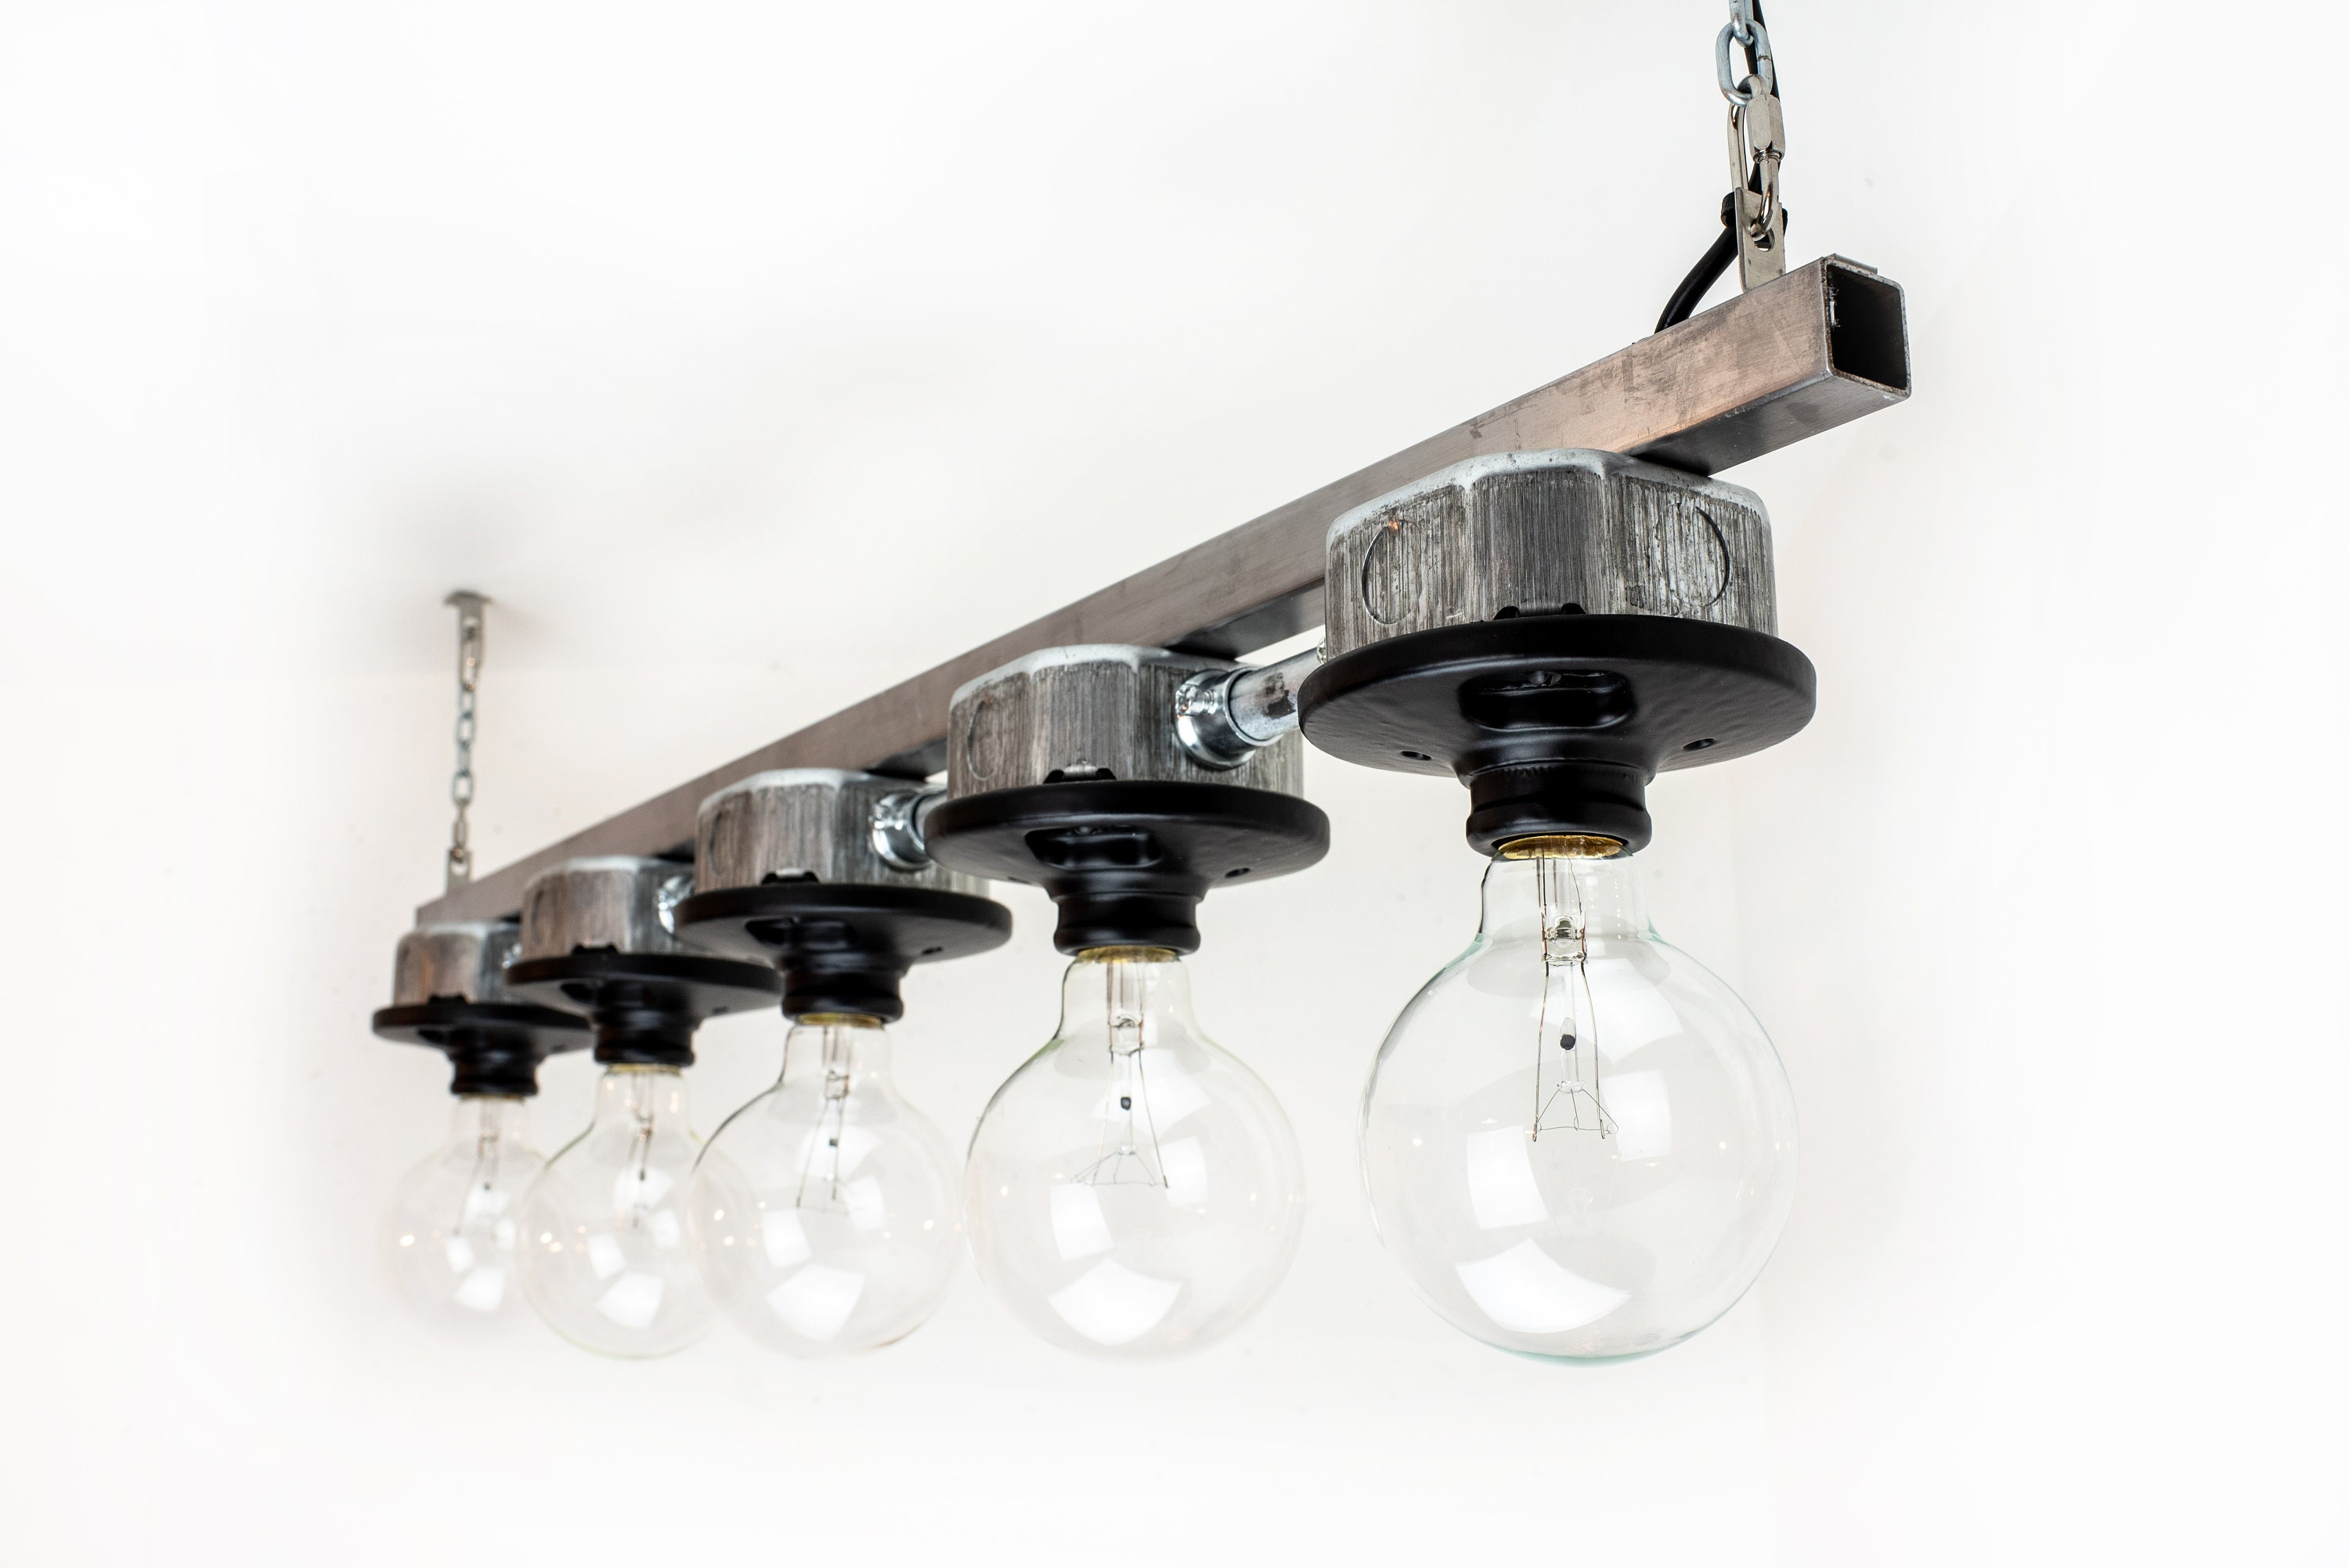 Industrial style lighting plug in pendant light 5 bulb light fixture industrial chandelier black ceiling lamp